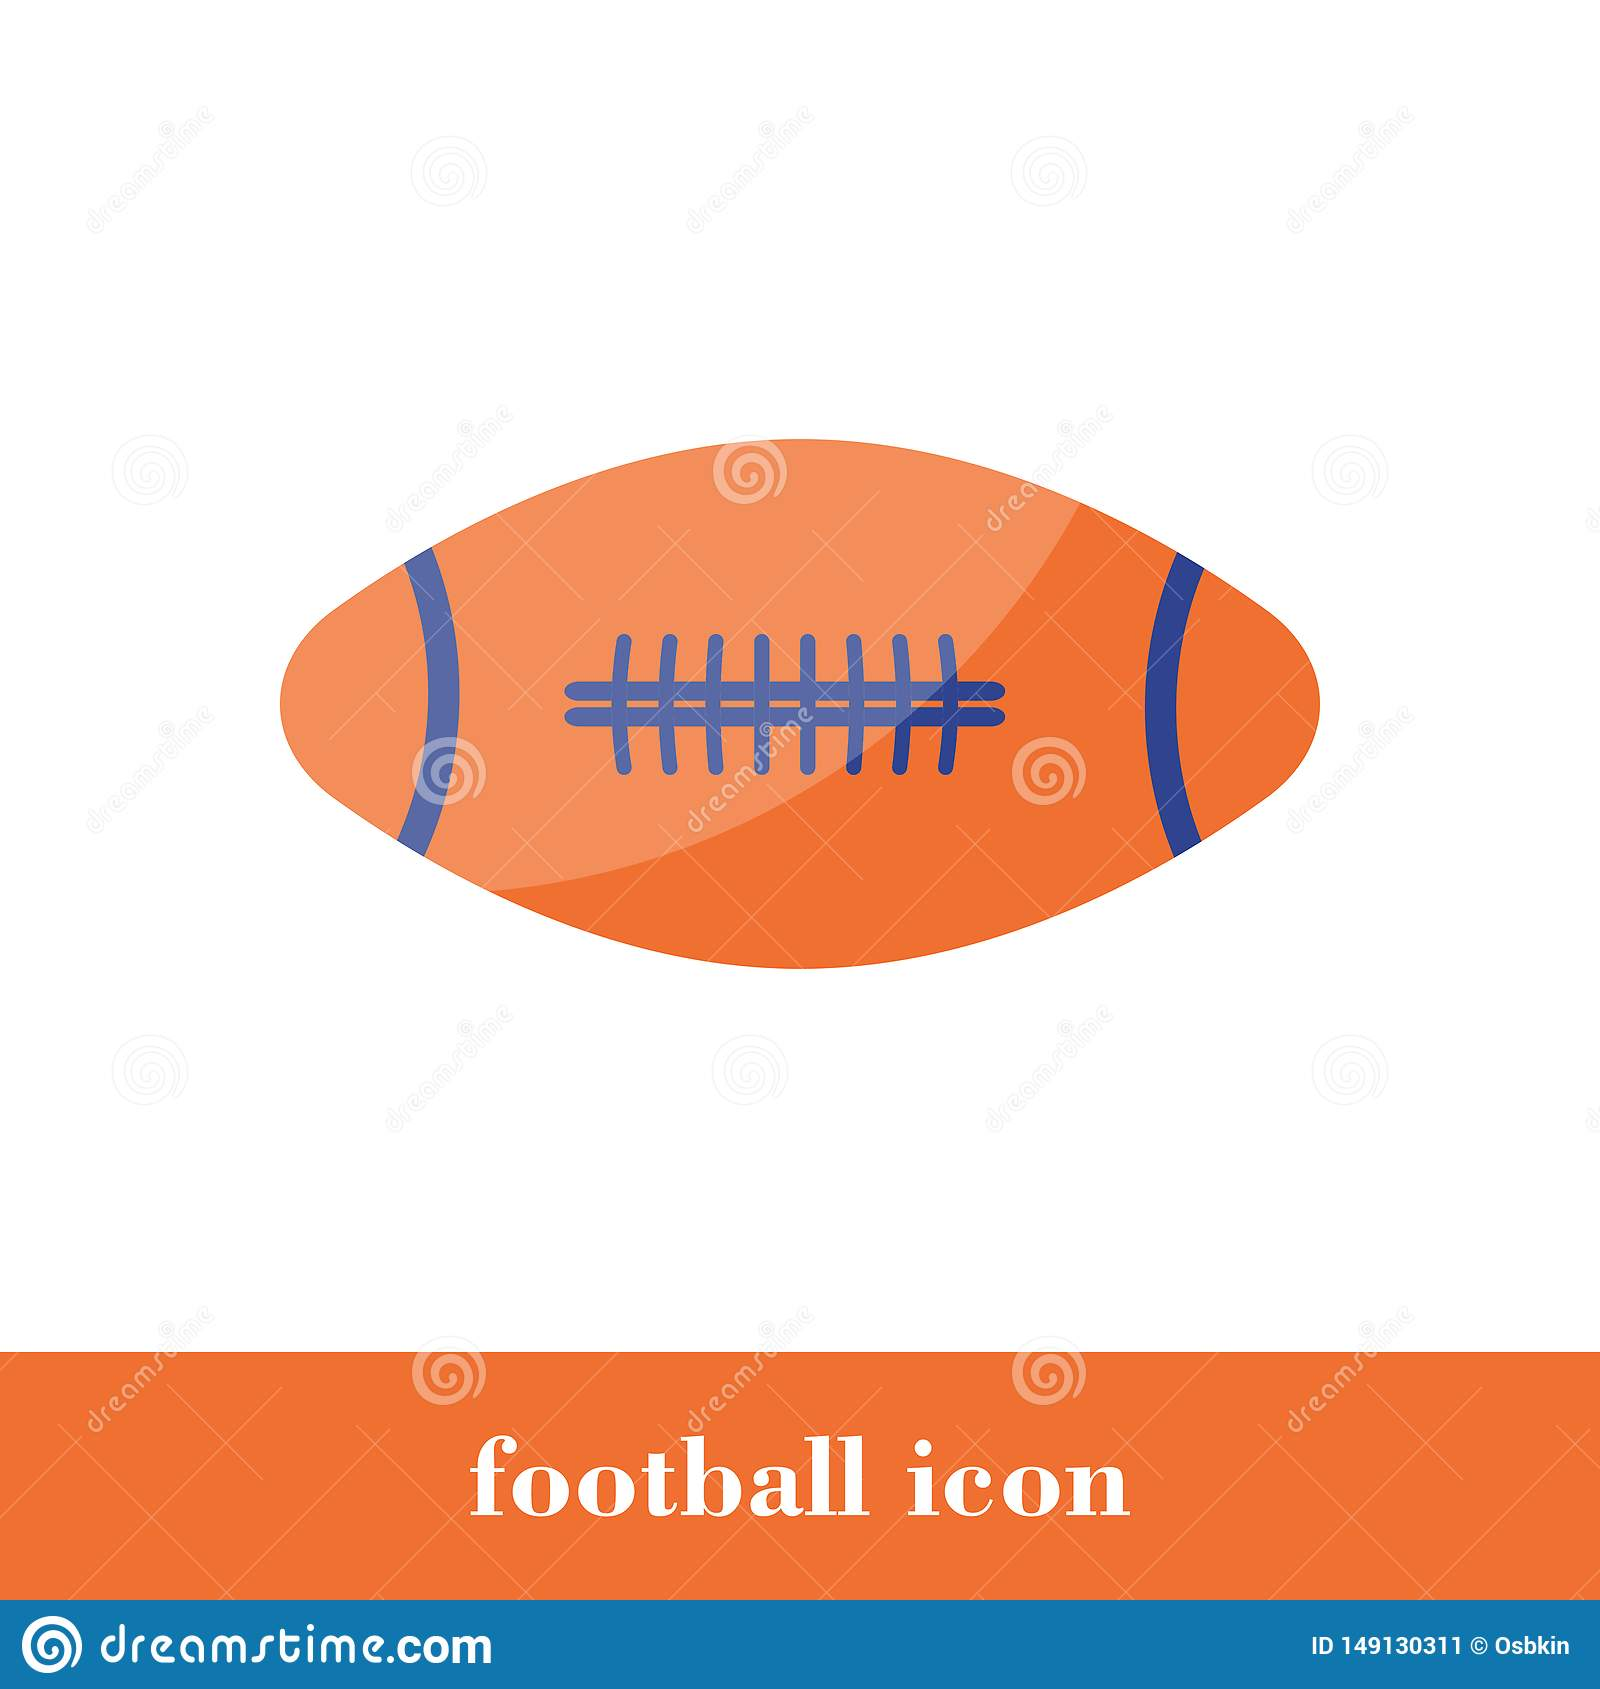 Football icon. Flat style. Ball